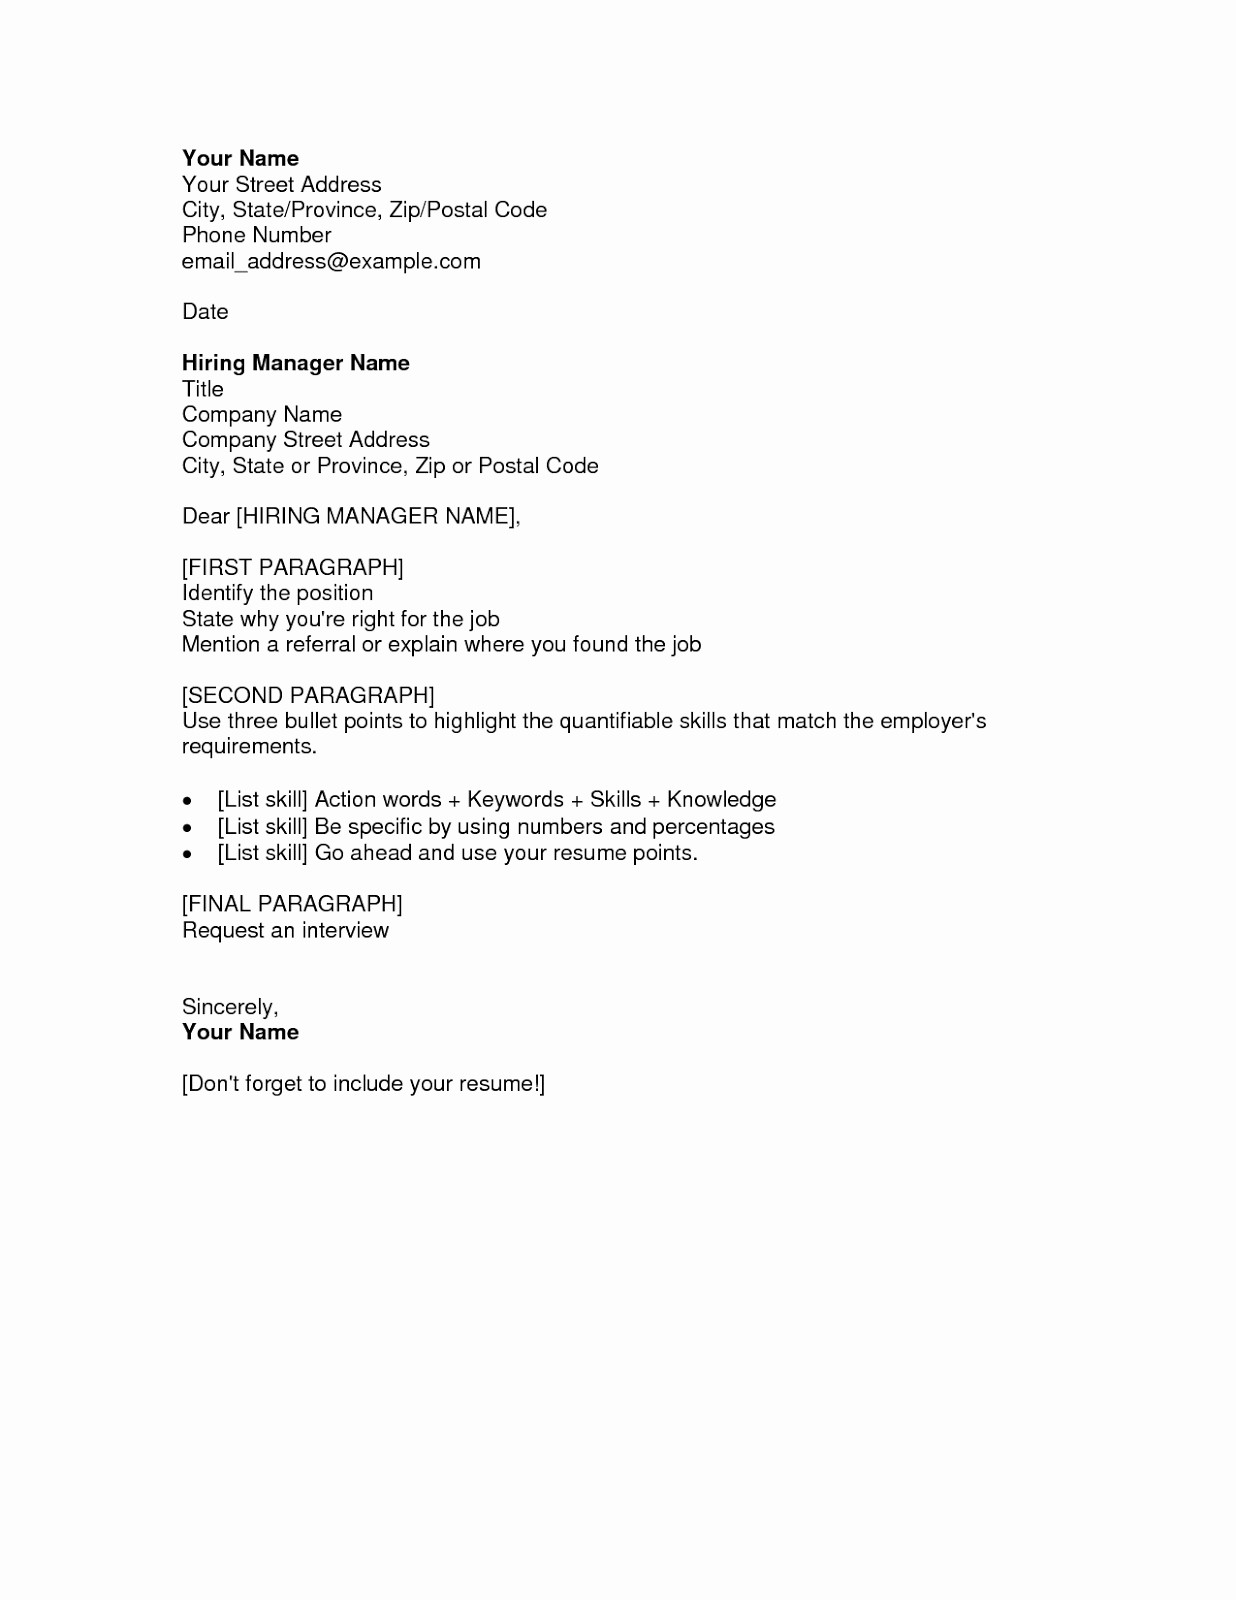 Free Resume Cover Letter Samples Beautiful Free Cover Letter Samples for Resumes